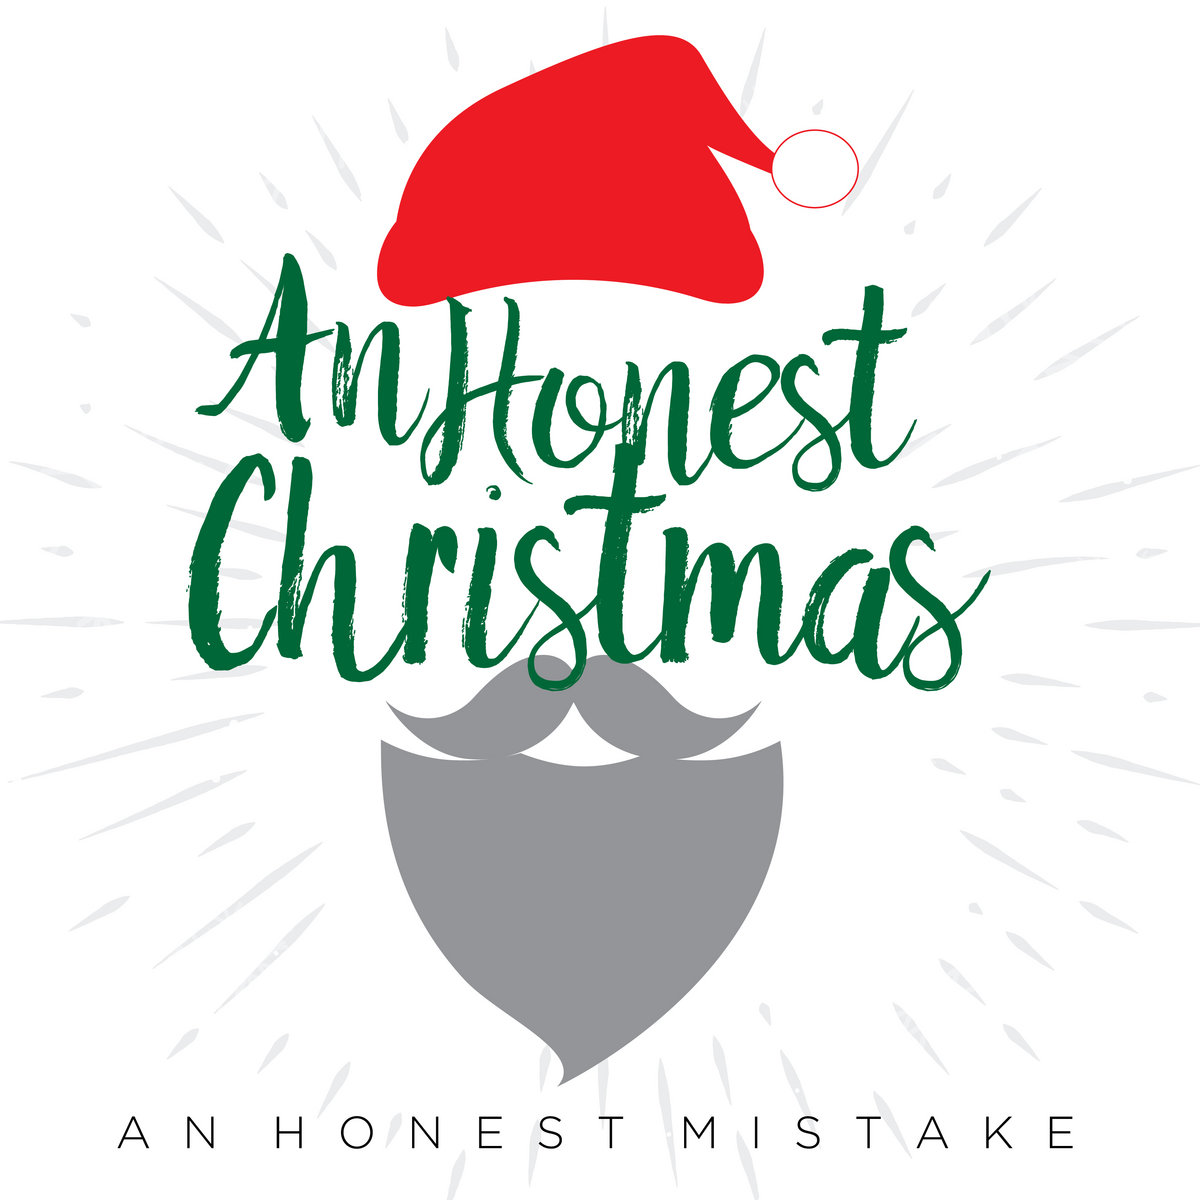 All I Want For Christmas Is You (Mariah Carey Cover) | An Honest Mistake